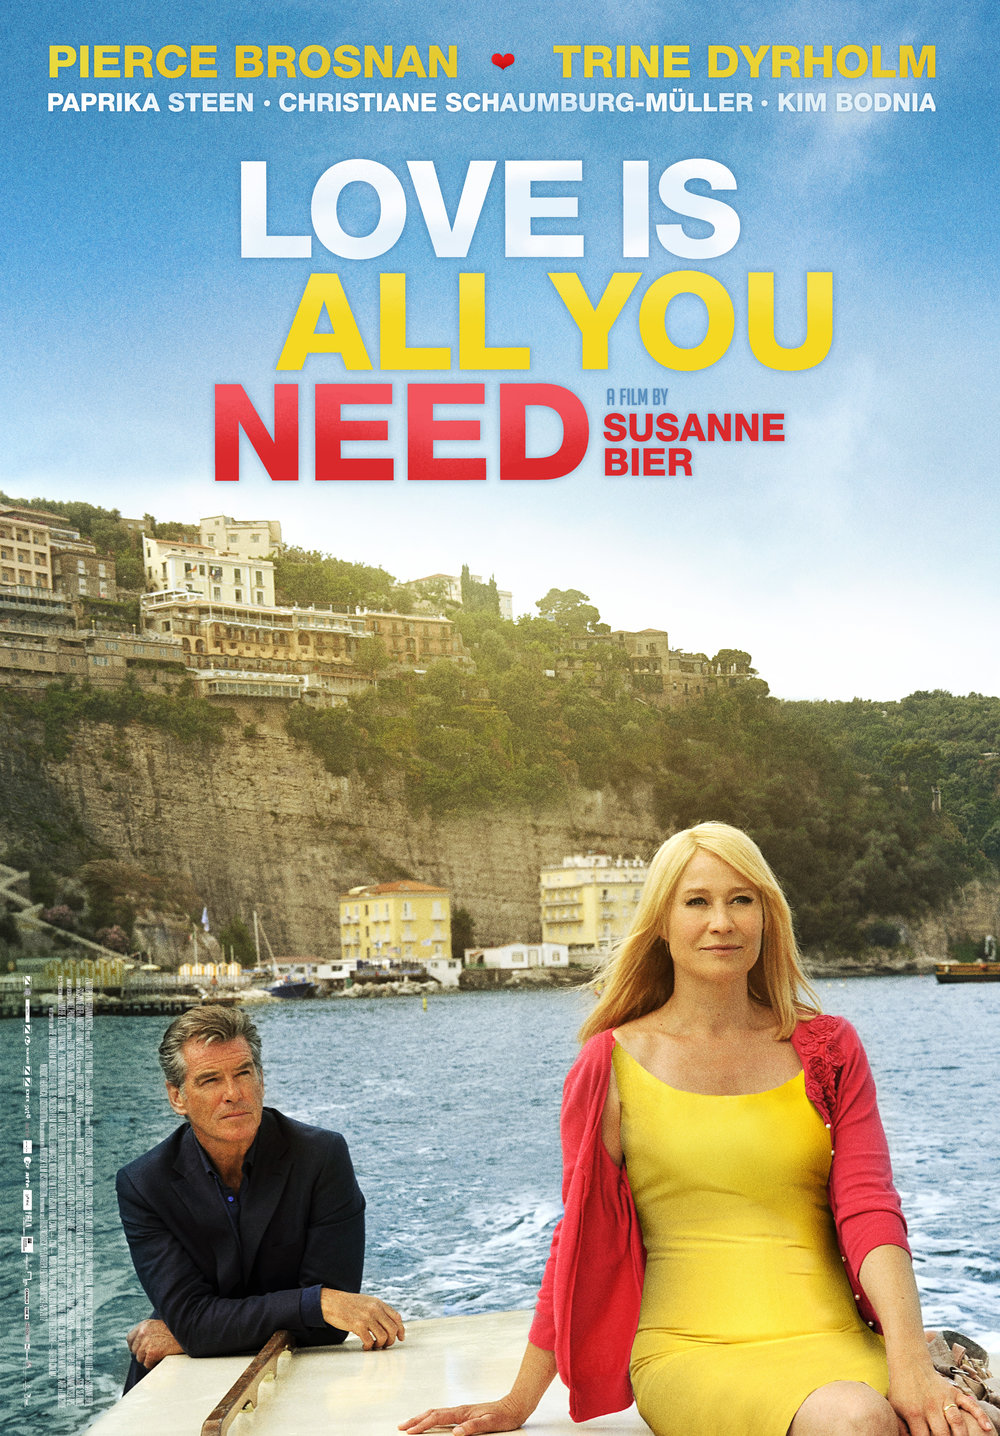 Love is all you need  by  Susanne Bier